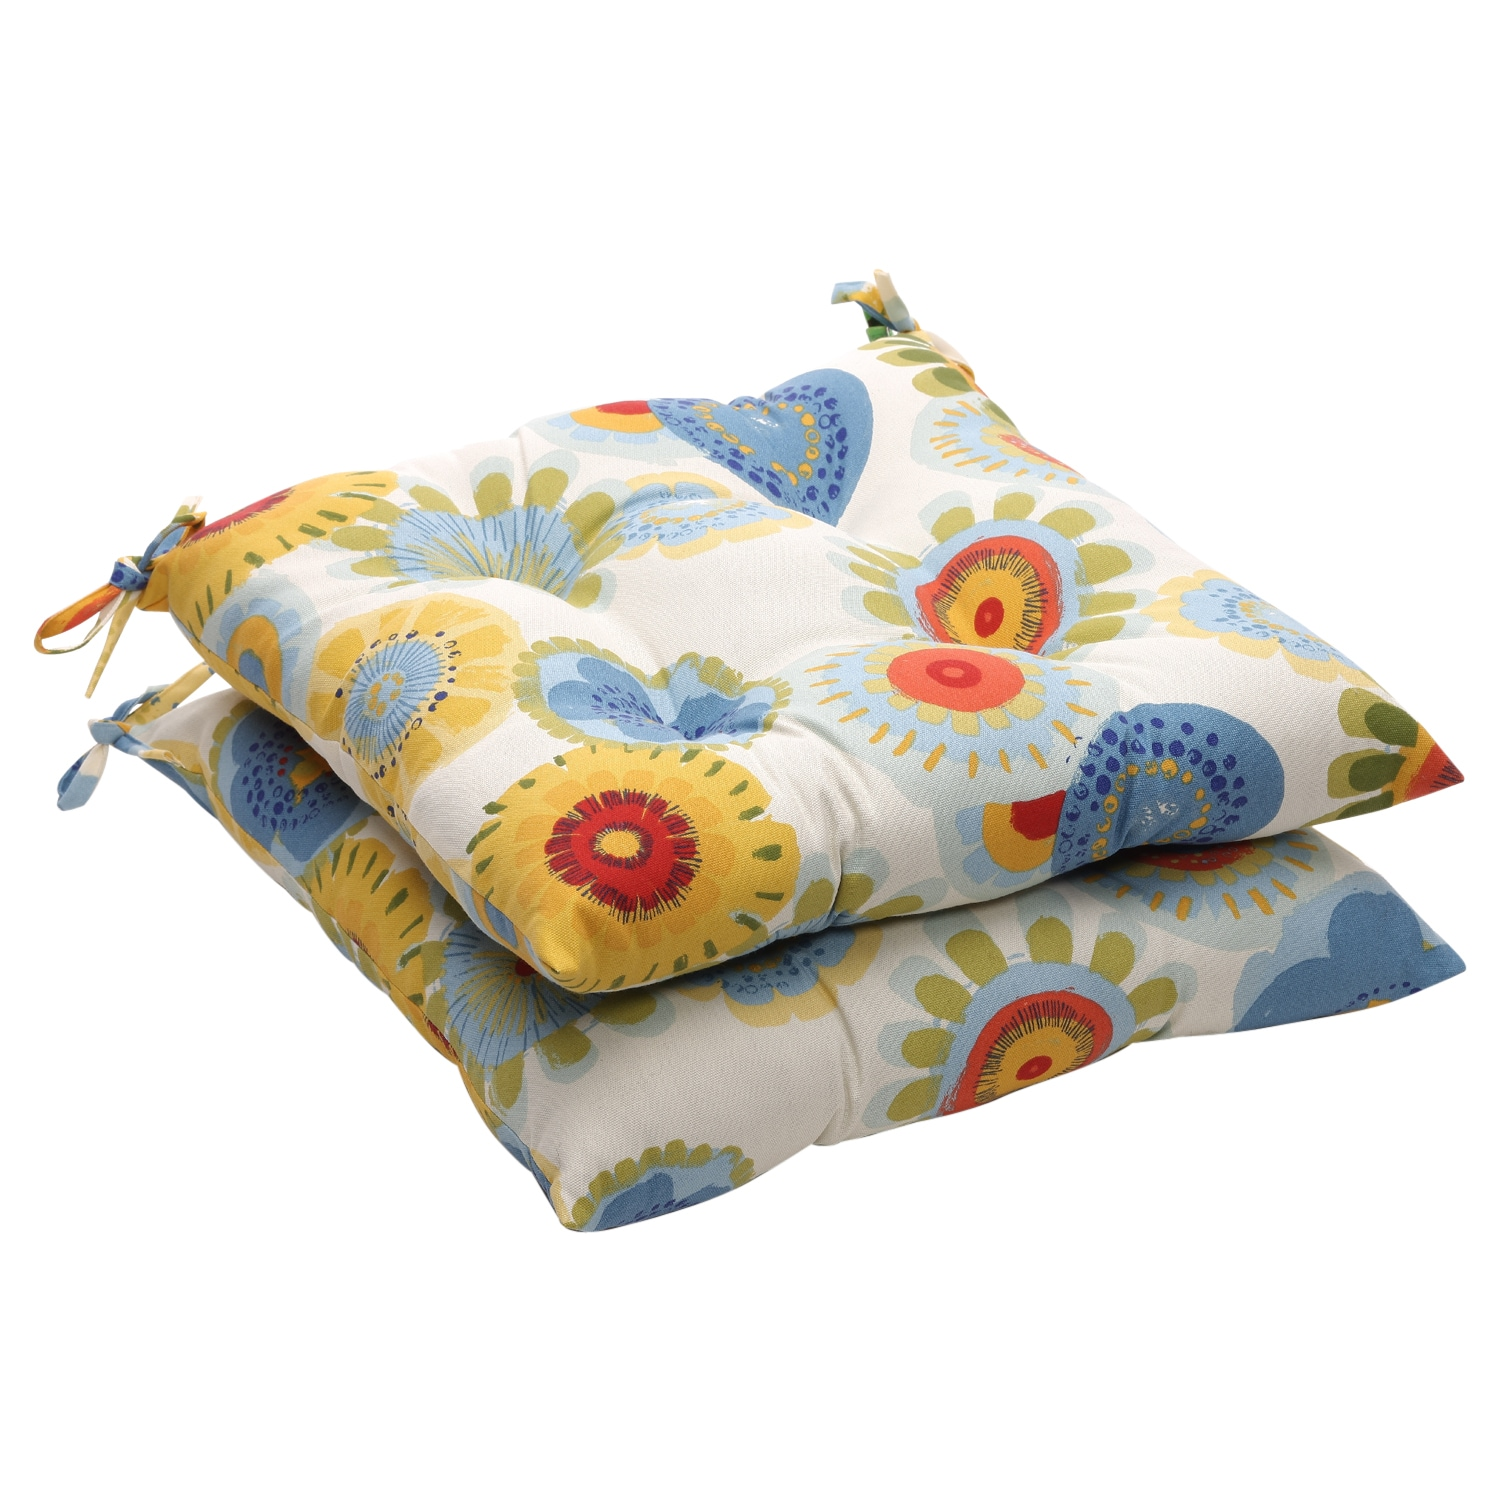 Multicolored Floral Print Outdoor Tufted Seat Cushions